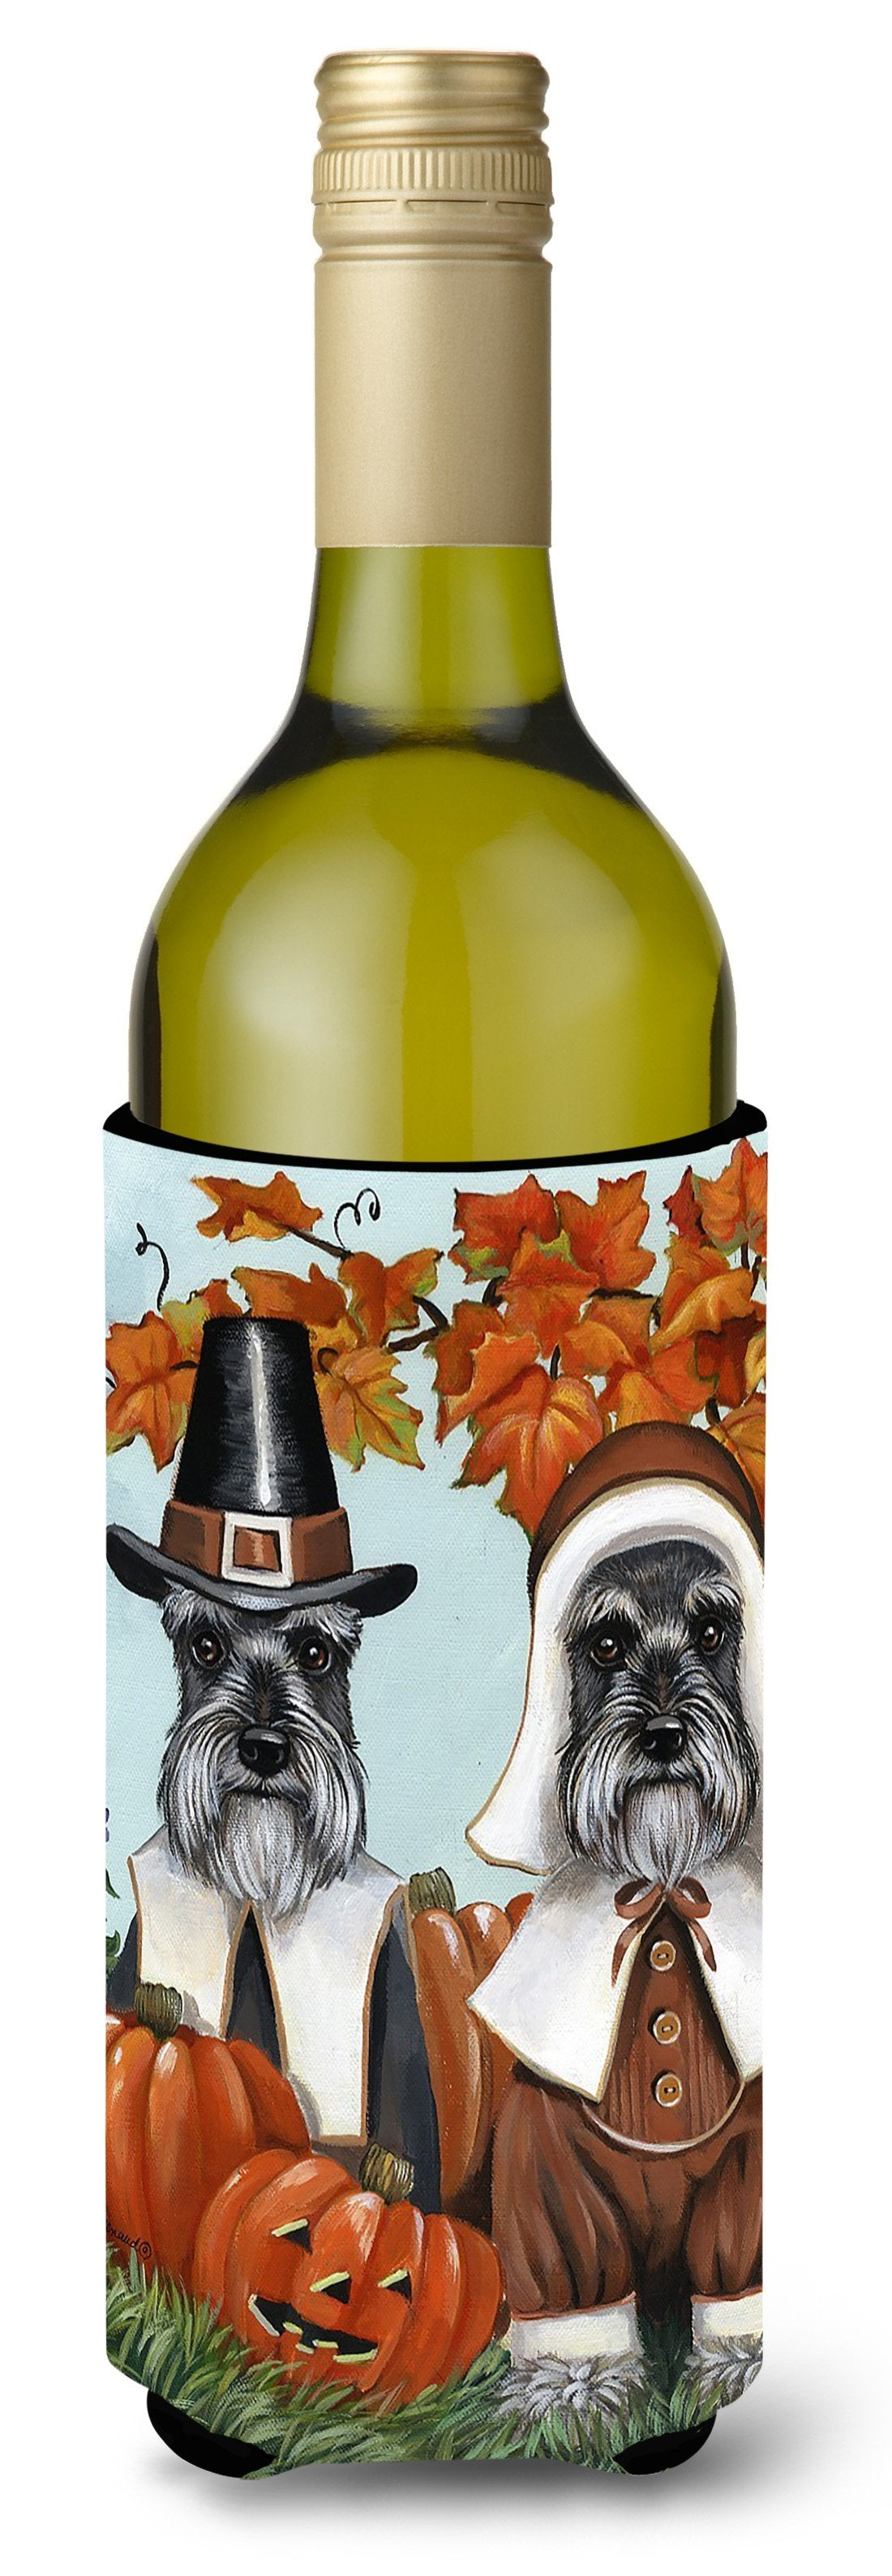 Schnauzer Thanksgiving Pilgrims Wine Bottle Hugger PPP3167LITERK by Caroline's Treasures